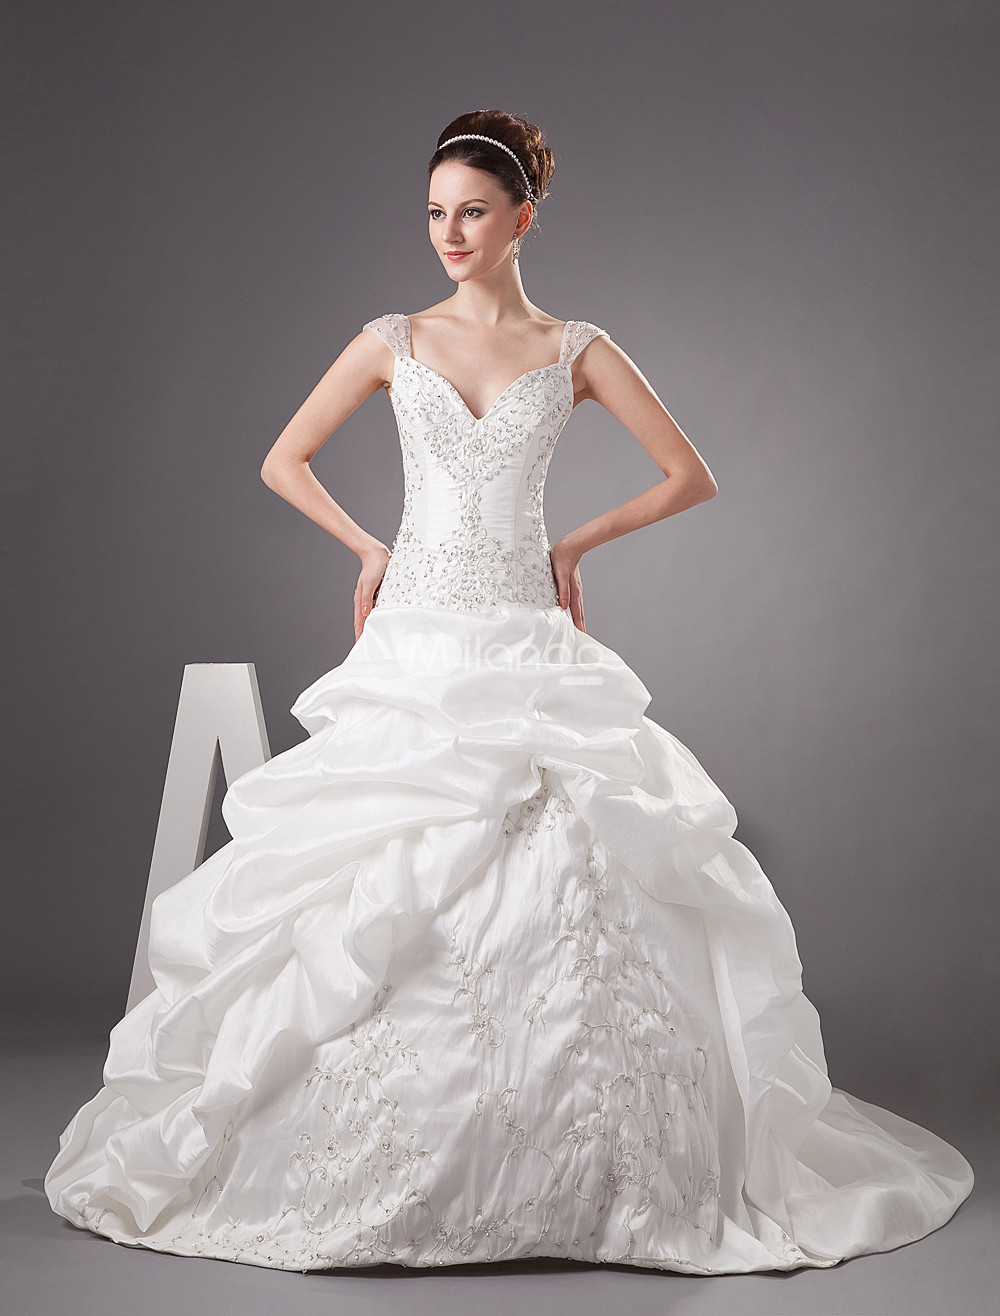 Cinderella Wedding Dresses are Favorite for all Ages  Ohh